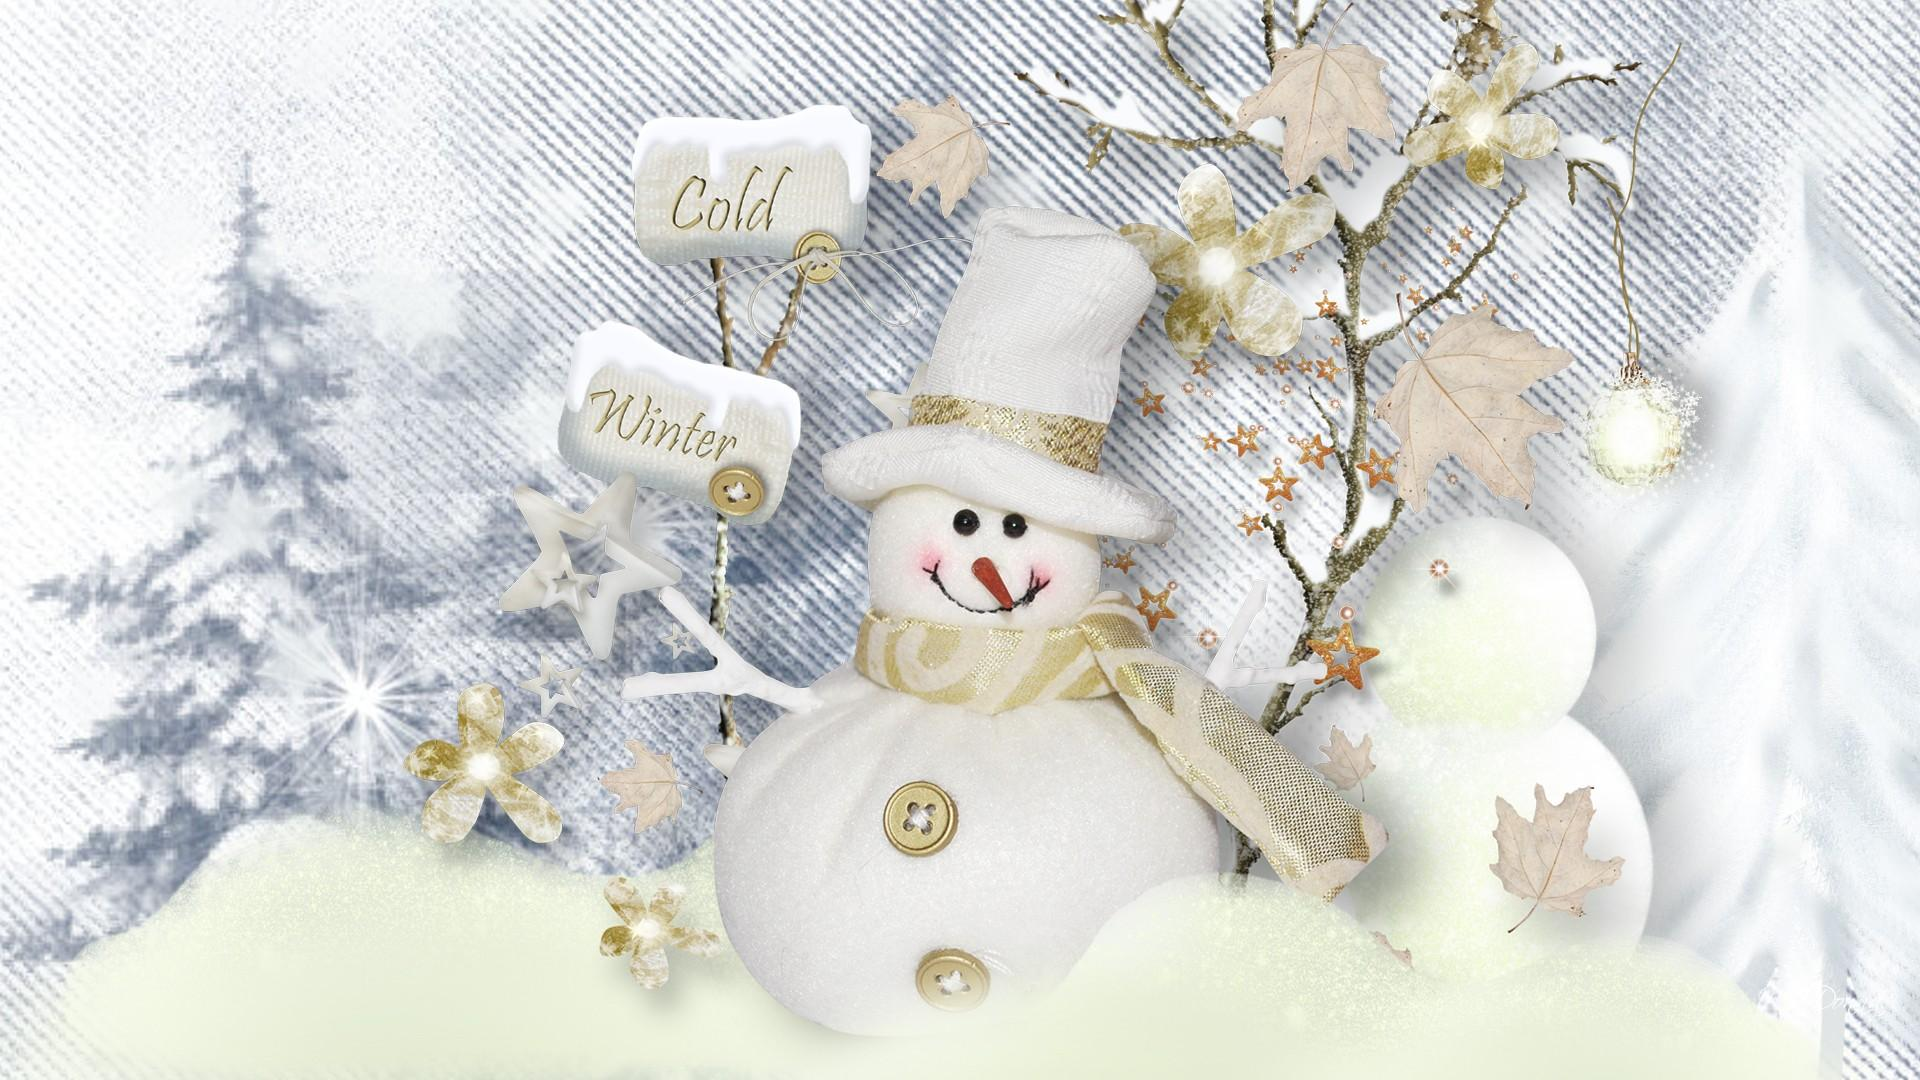 Winter Snowman Wallpapers 1920x1080